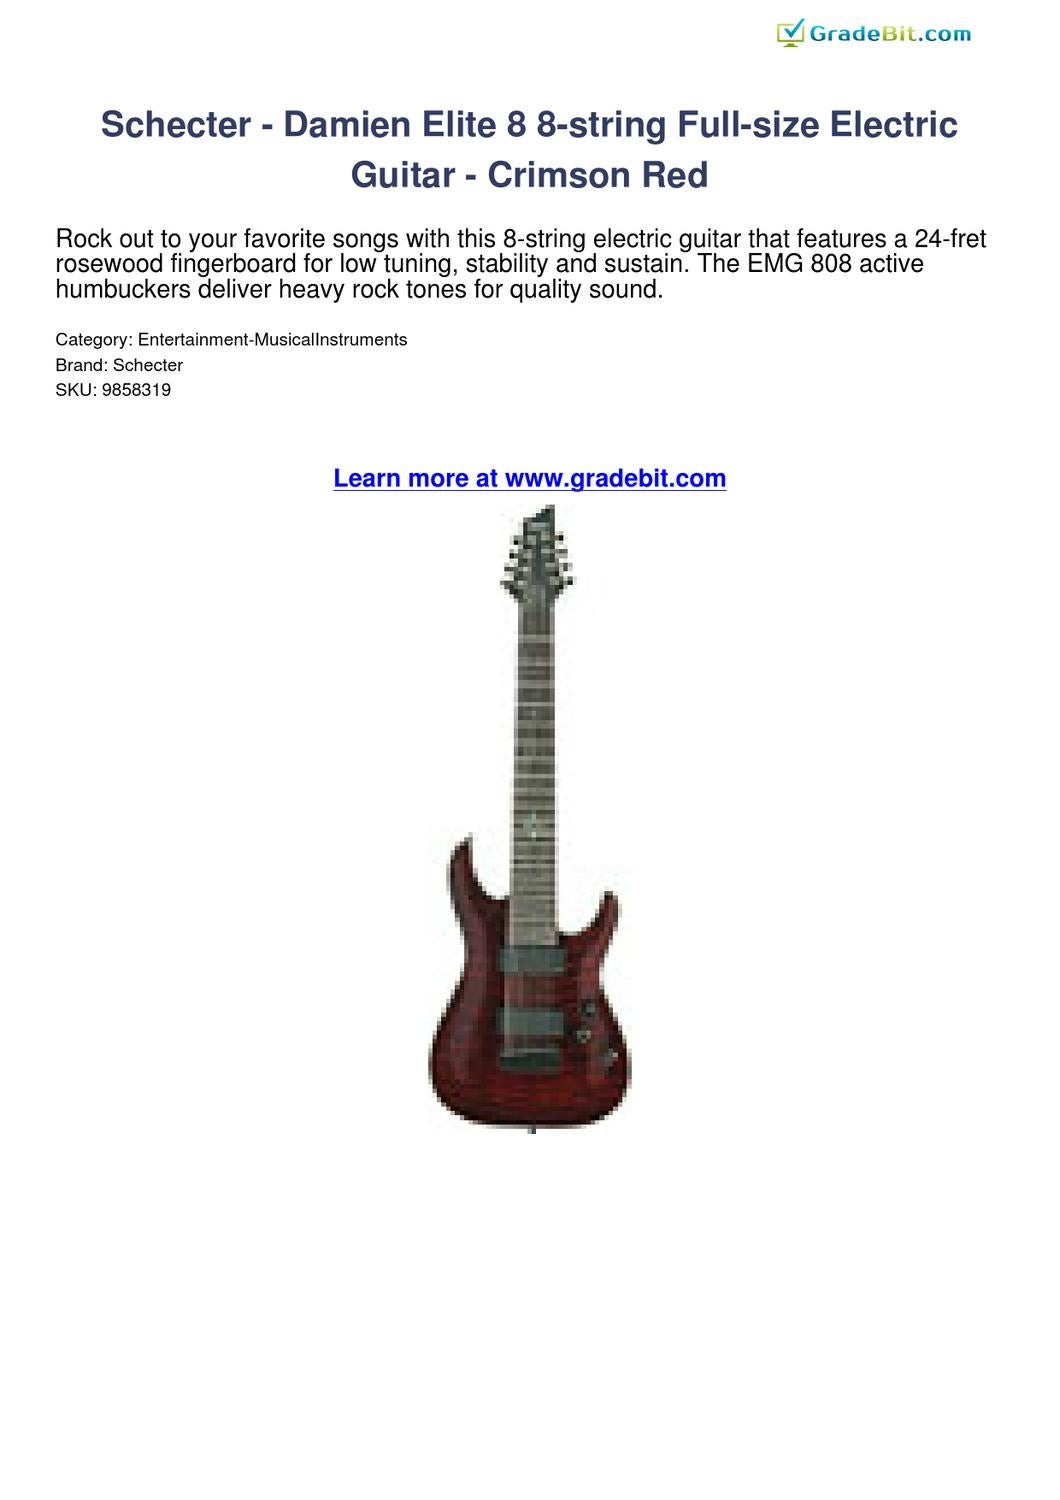 schecter damien elite 8 8 string full size electric guitar crimson red review by gradebit by tom. Black Bedroom Furniture Sets. Home Design Ideas